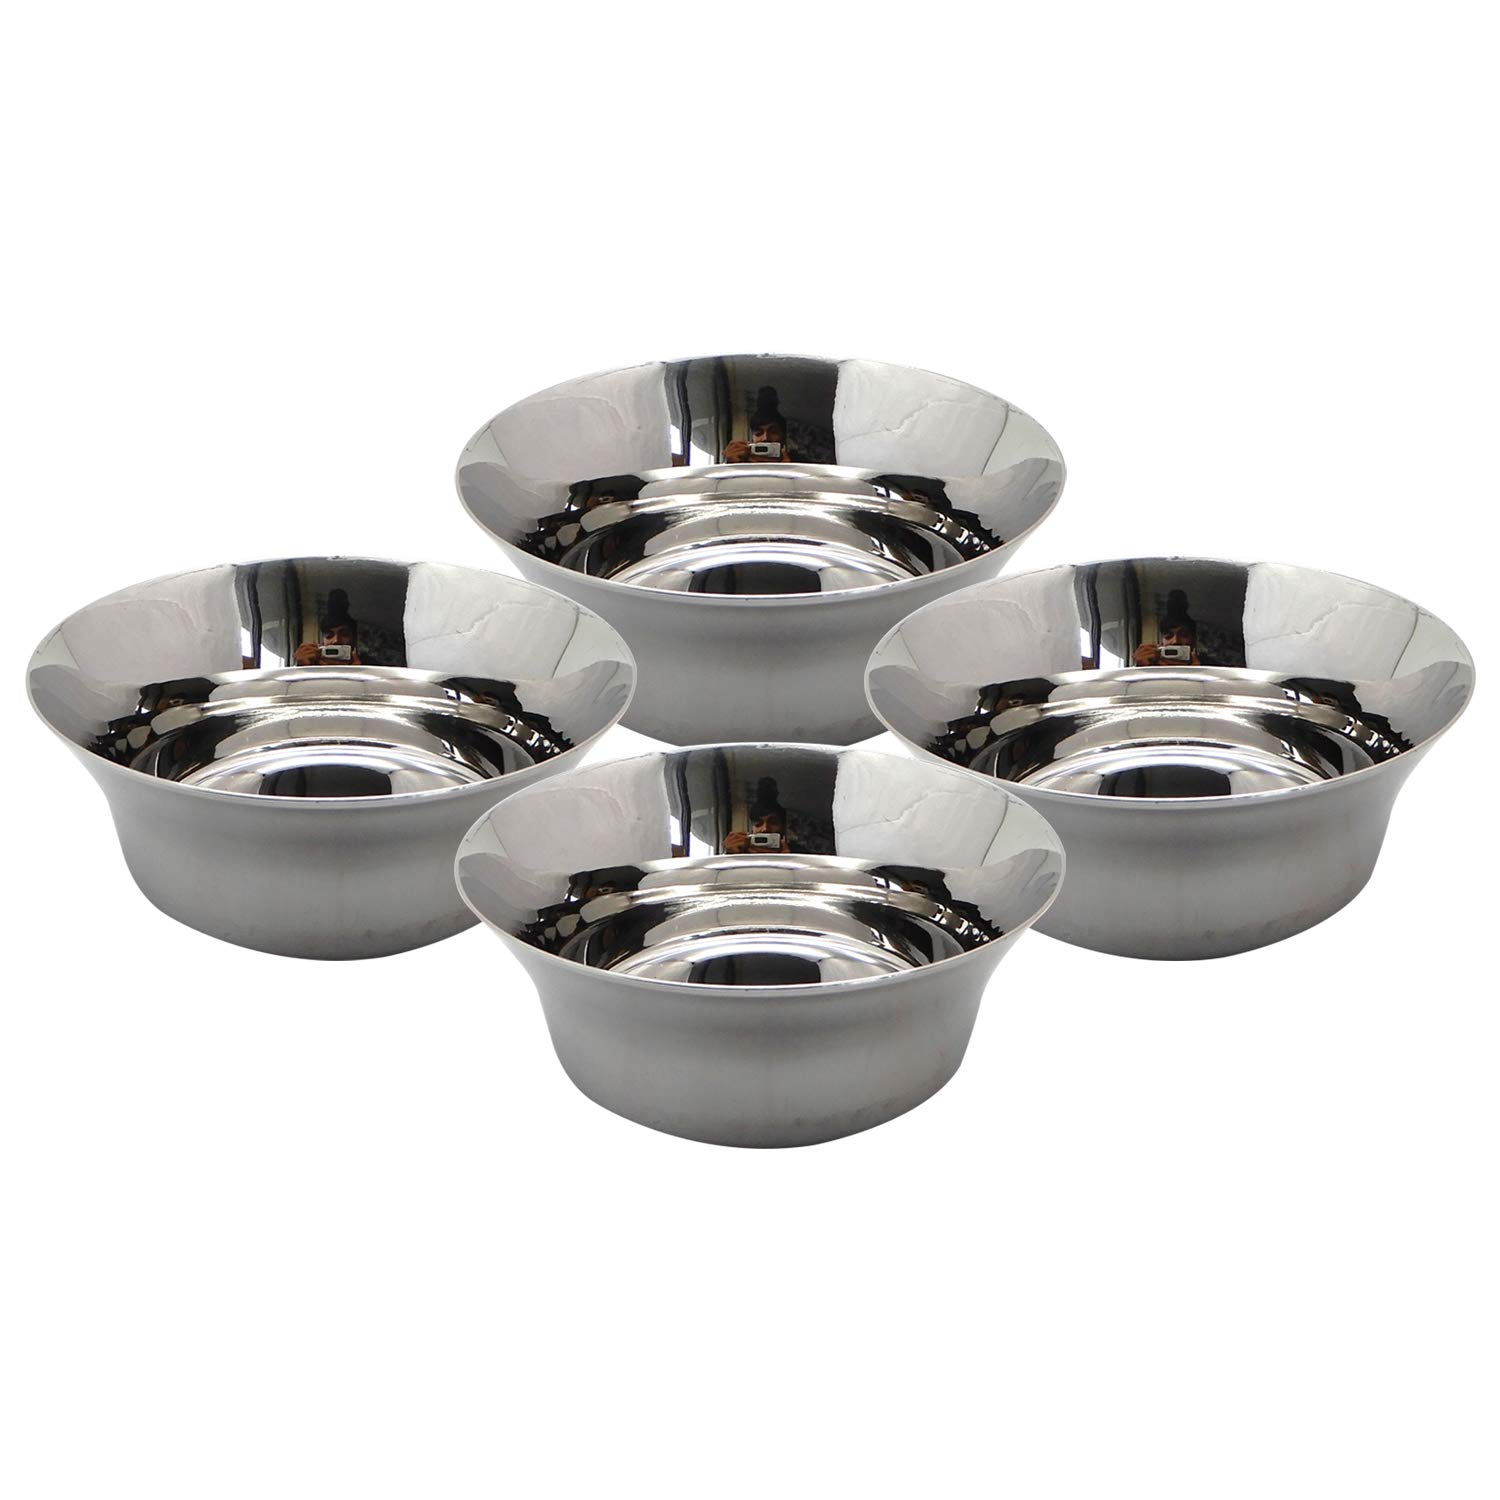 Bignay Pack of 4 Stainless Steel Mixing Set Mixing Bowls/Soup Bow Mixing Bowl Dishwasher Safe